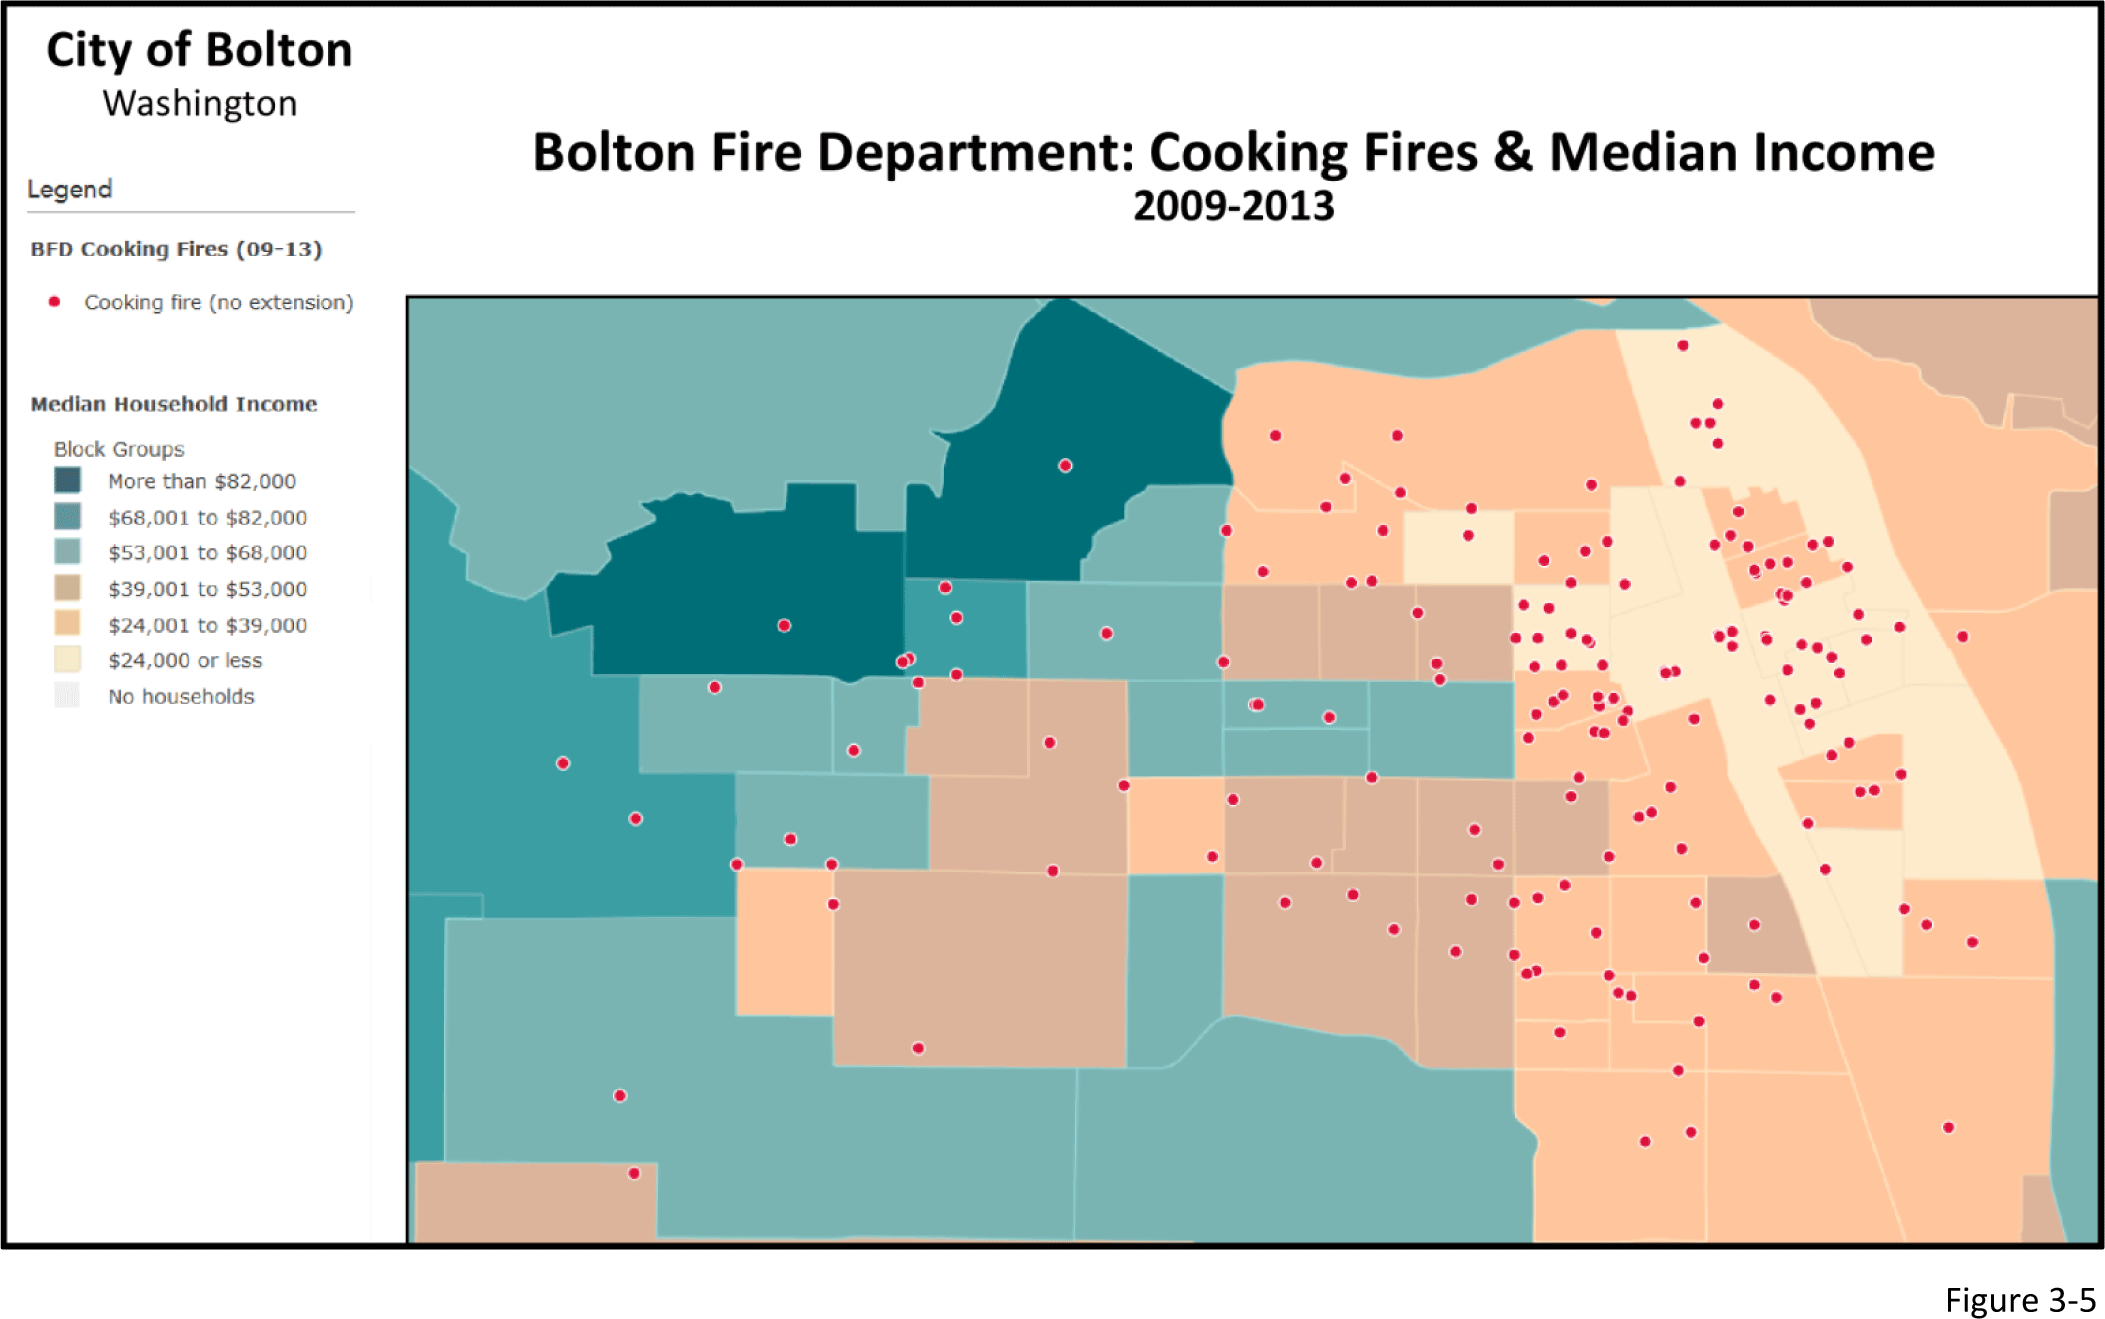 Figure 3-5: Map overlaying cooking fires with median income by area.